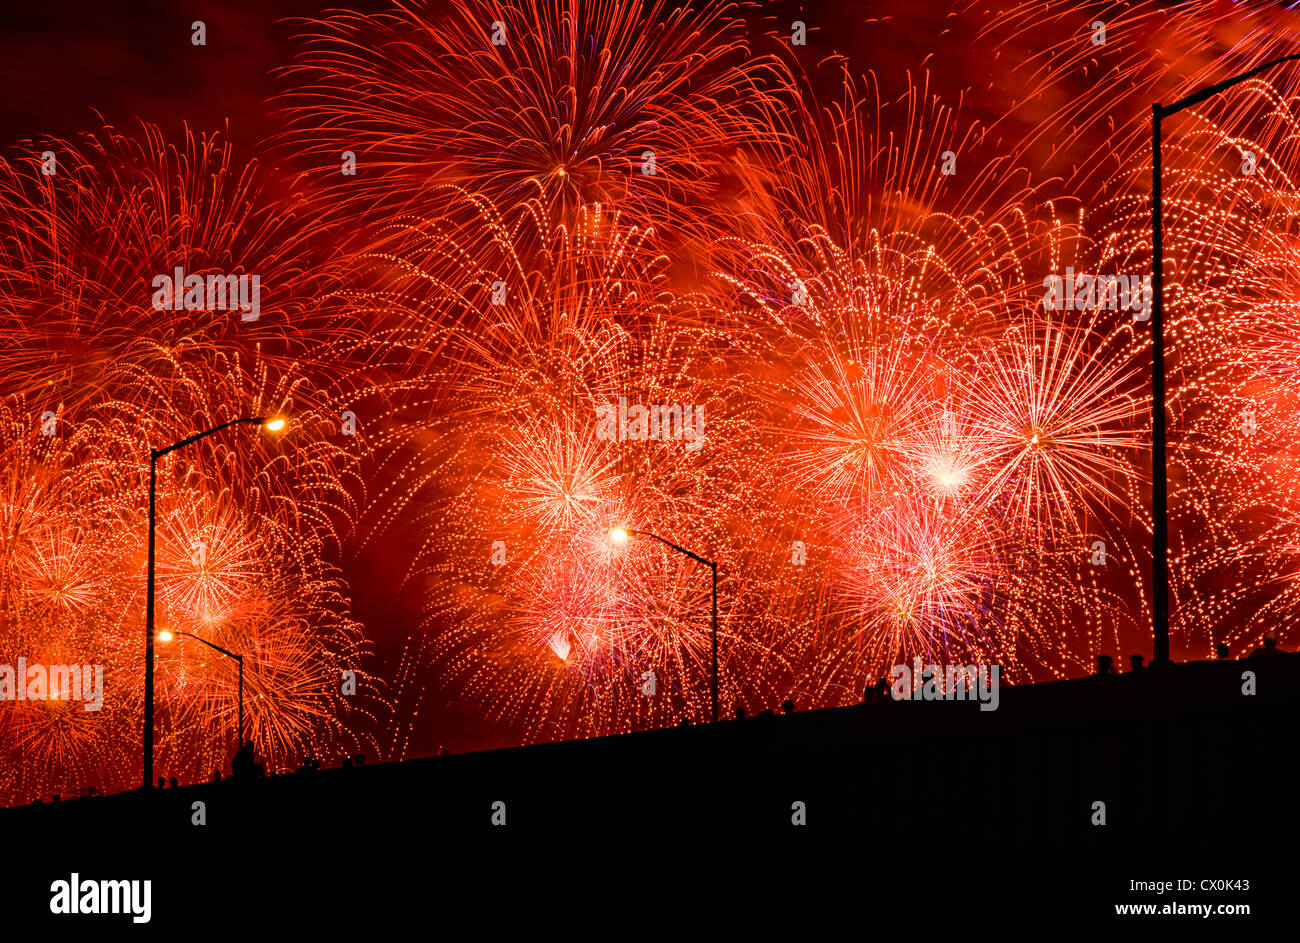 FPeople watch Fourth of July Fireworks from elevated overpass. - Stock Image